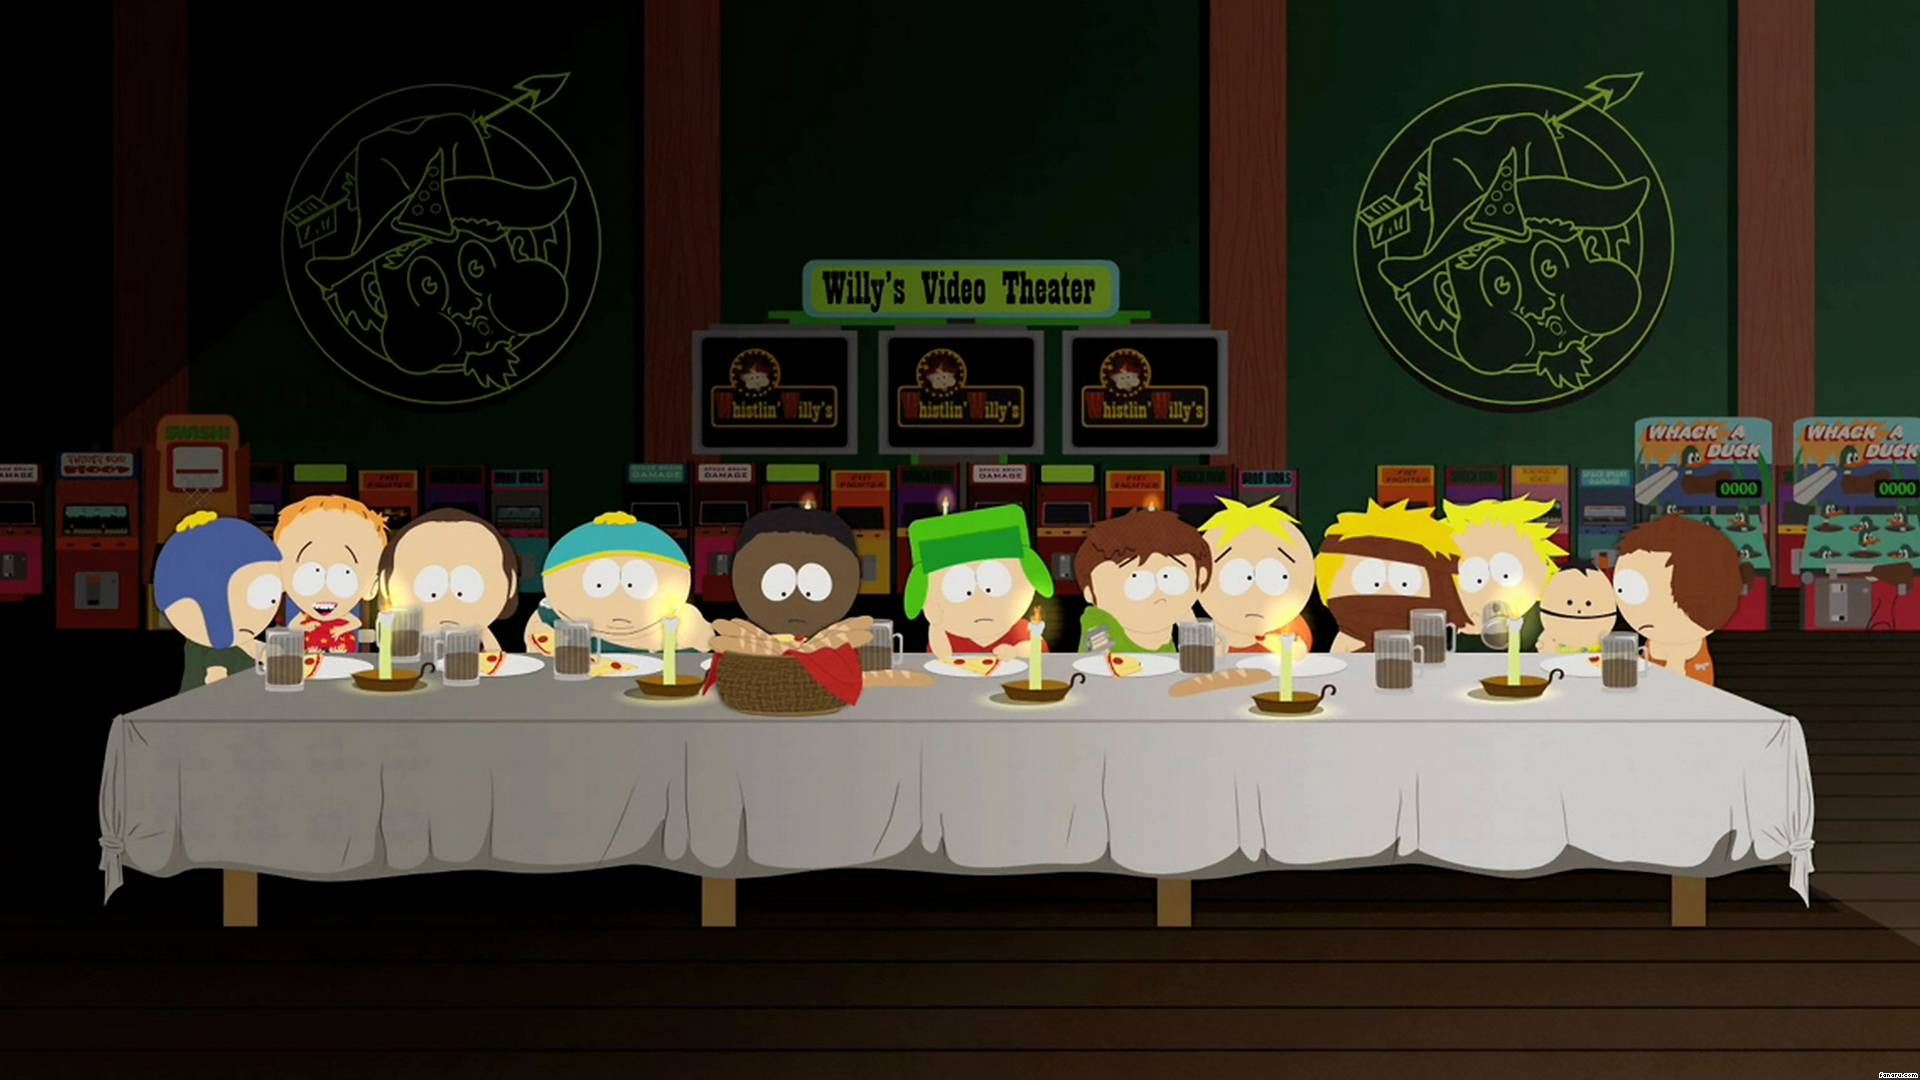 south park south park wallpaper (x)